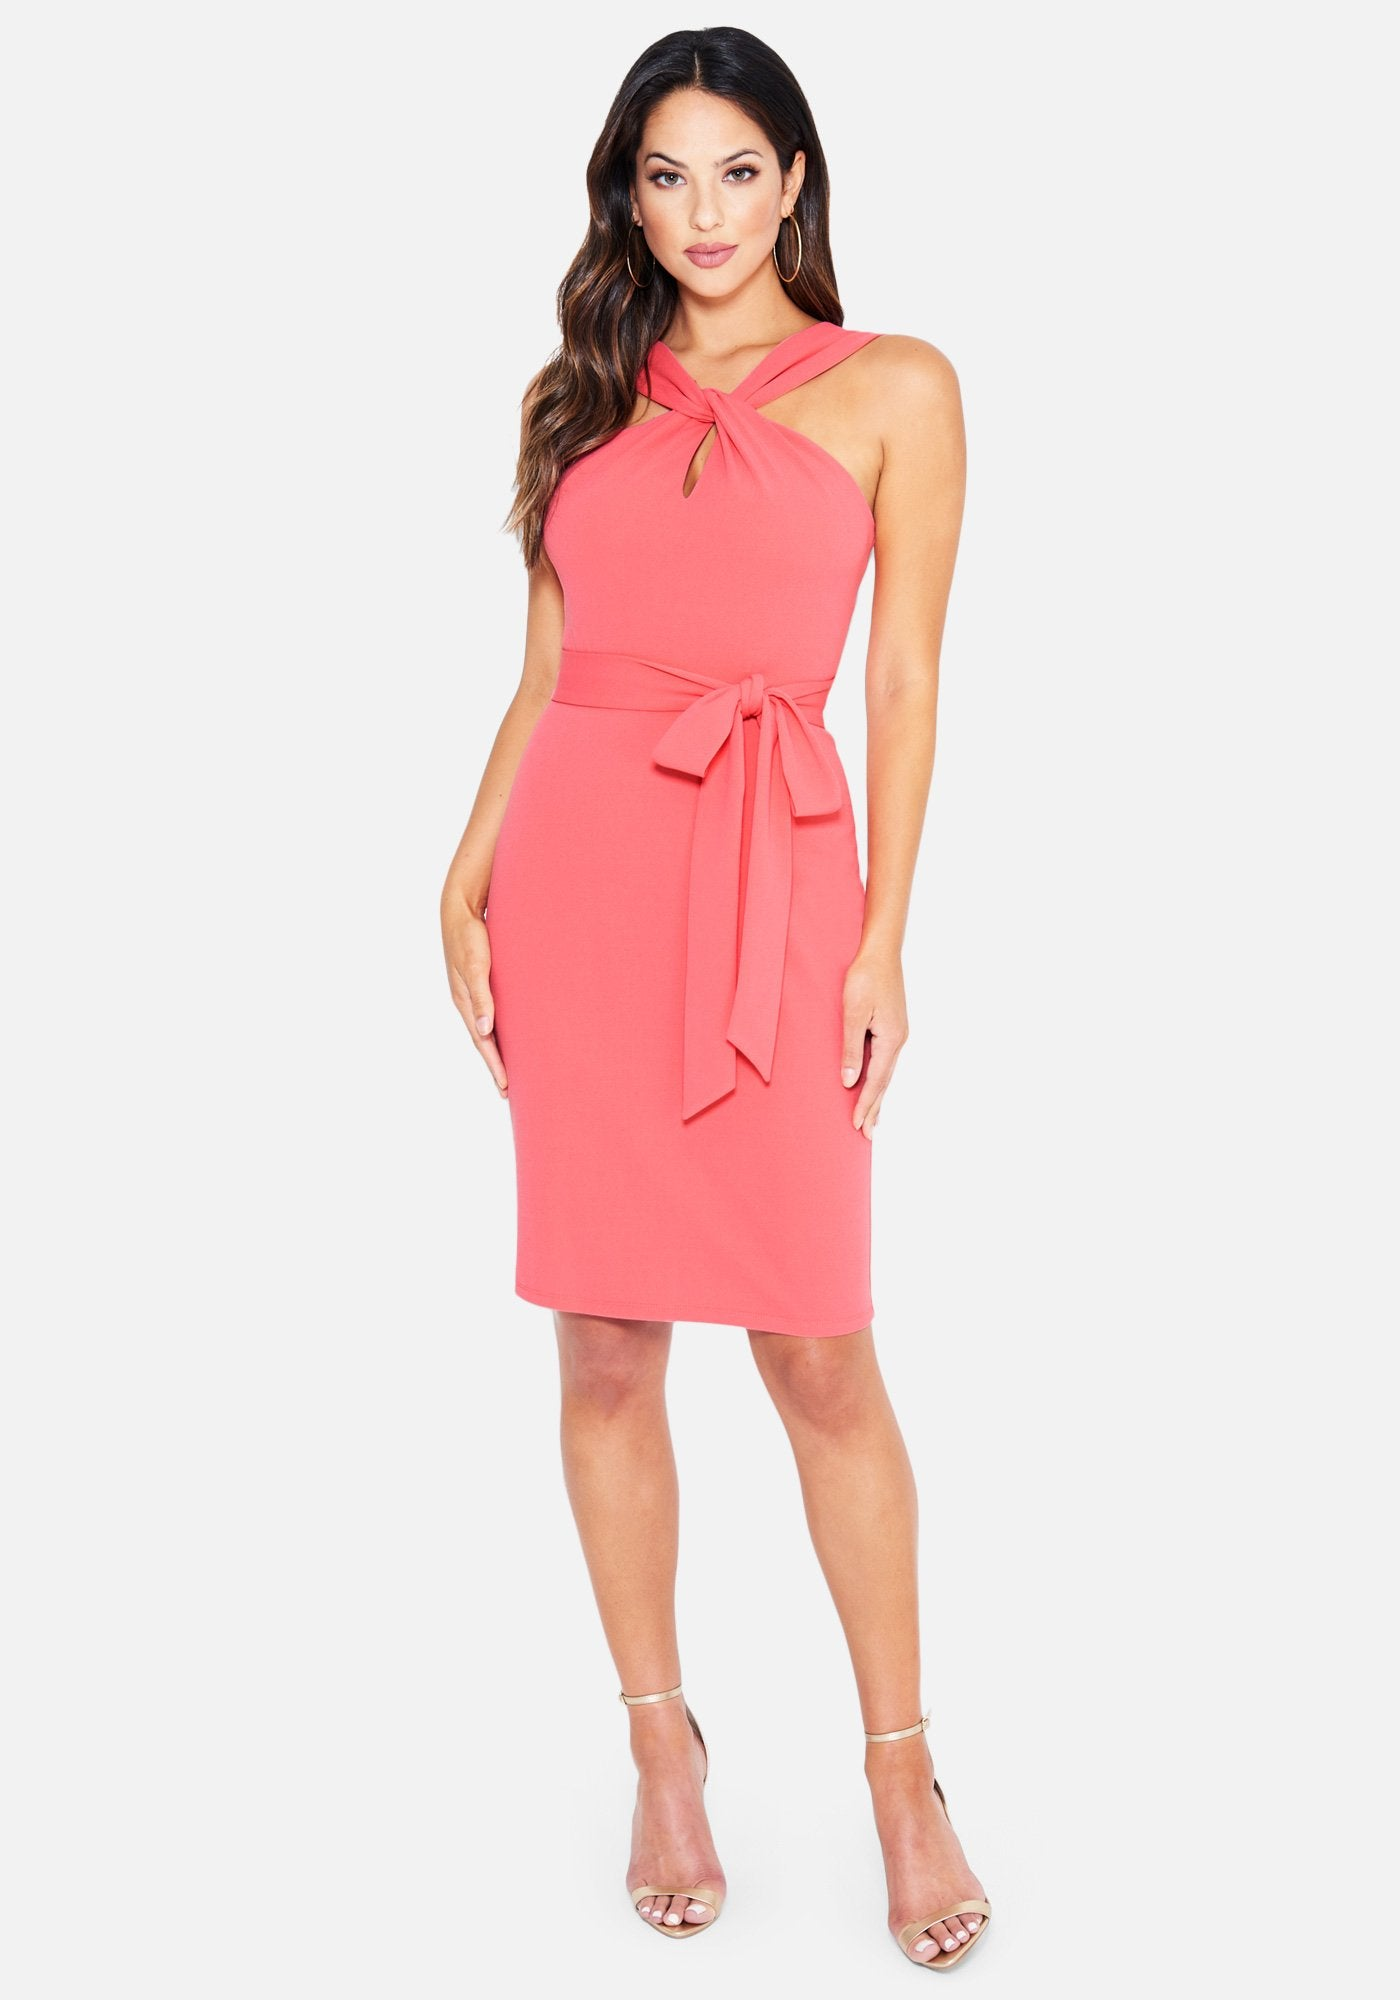 Image of Bebe Women's Keyhole Belted Midi Dress, Size 12 in Coral Polyester